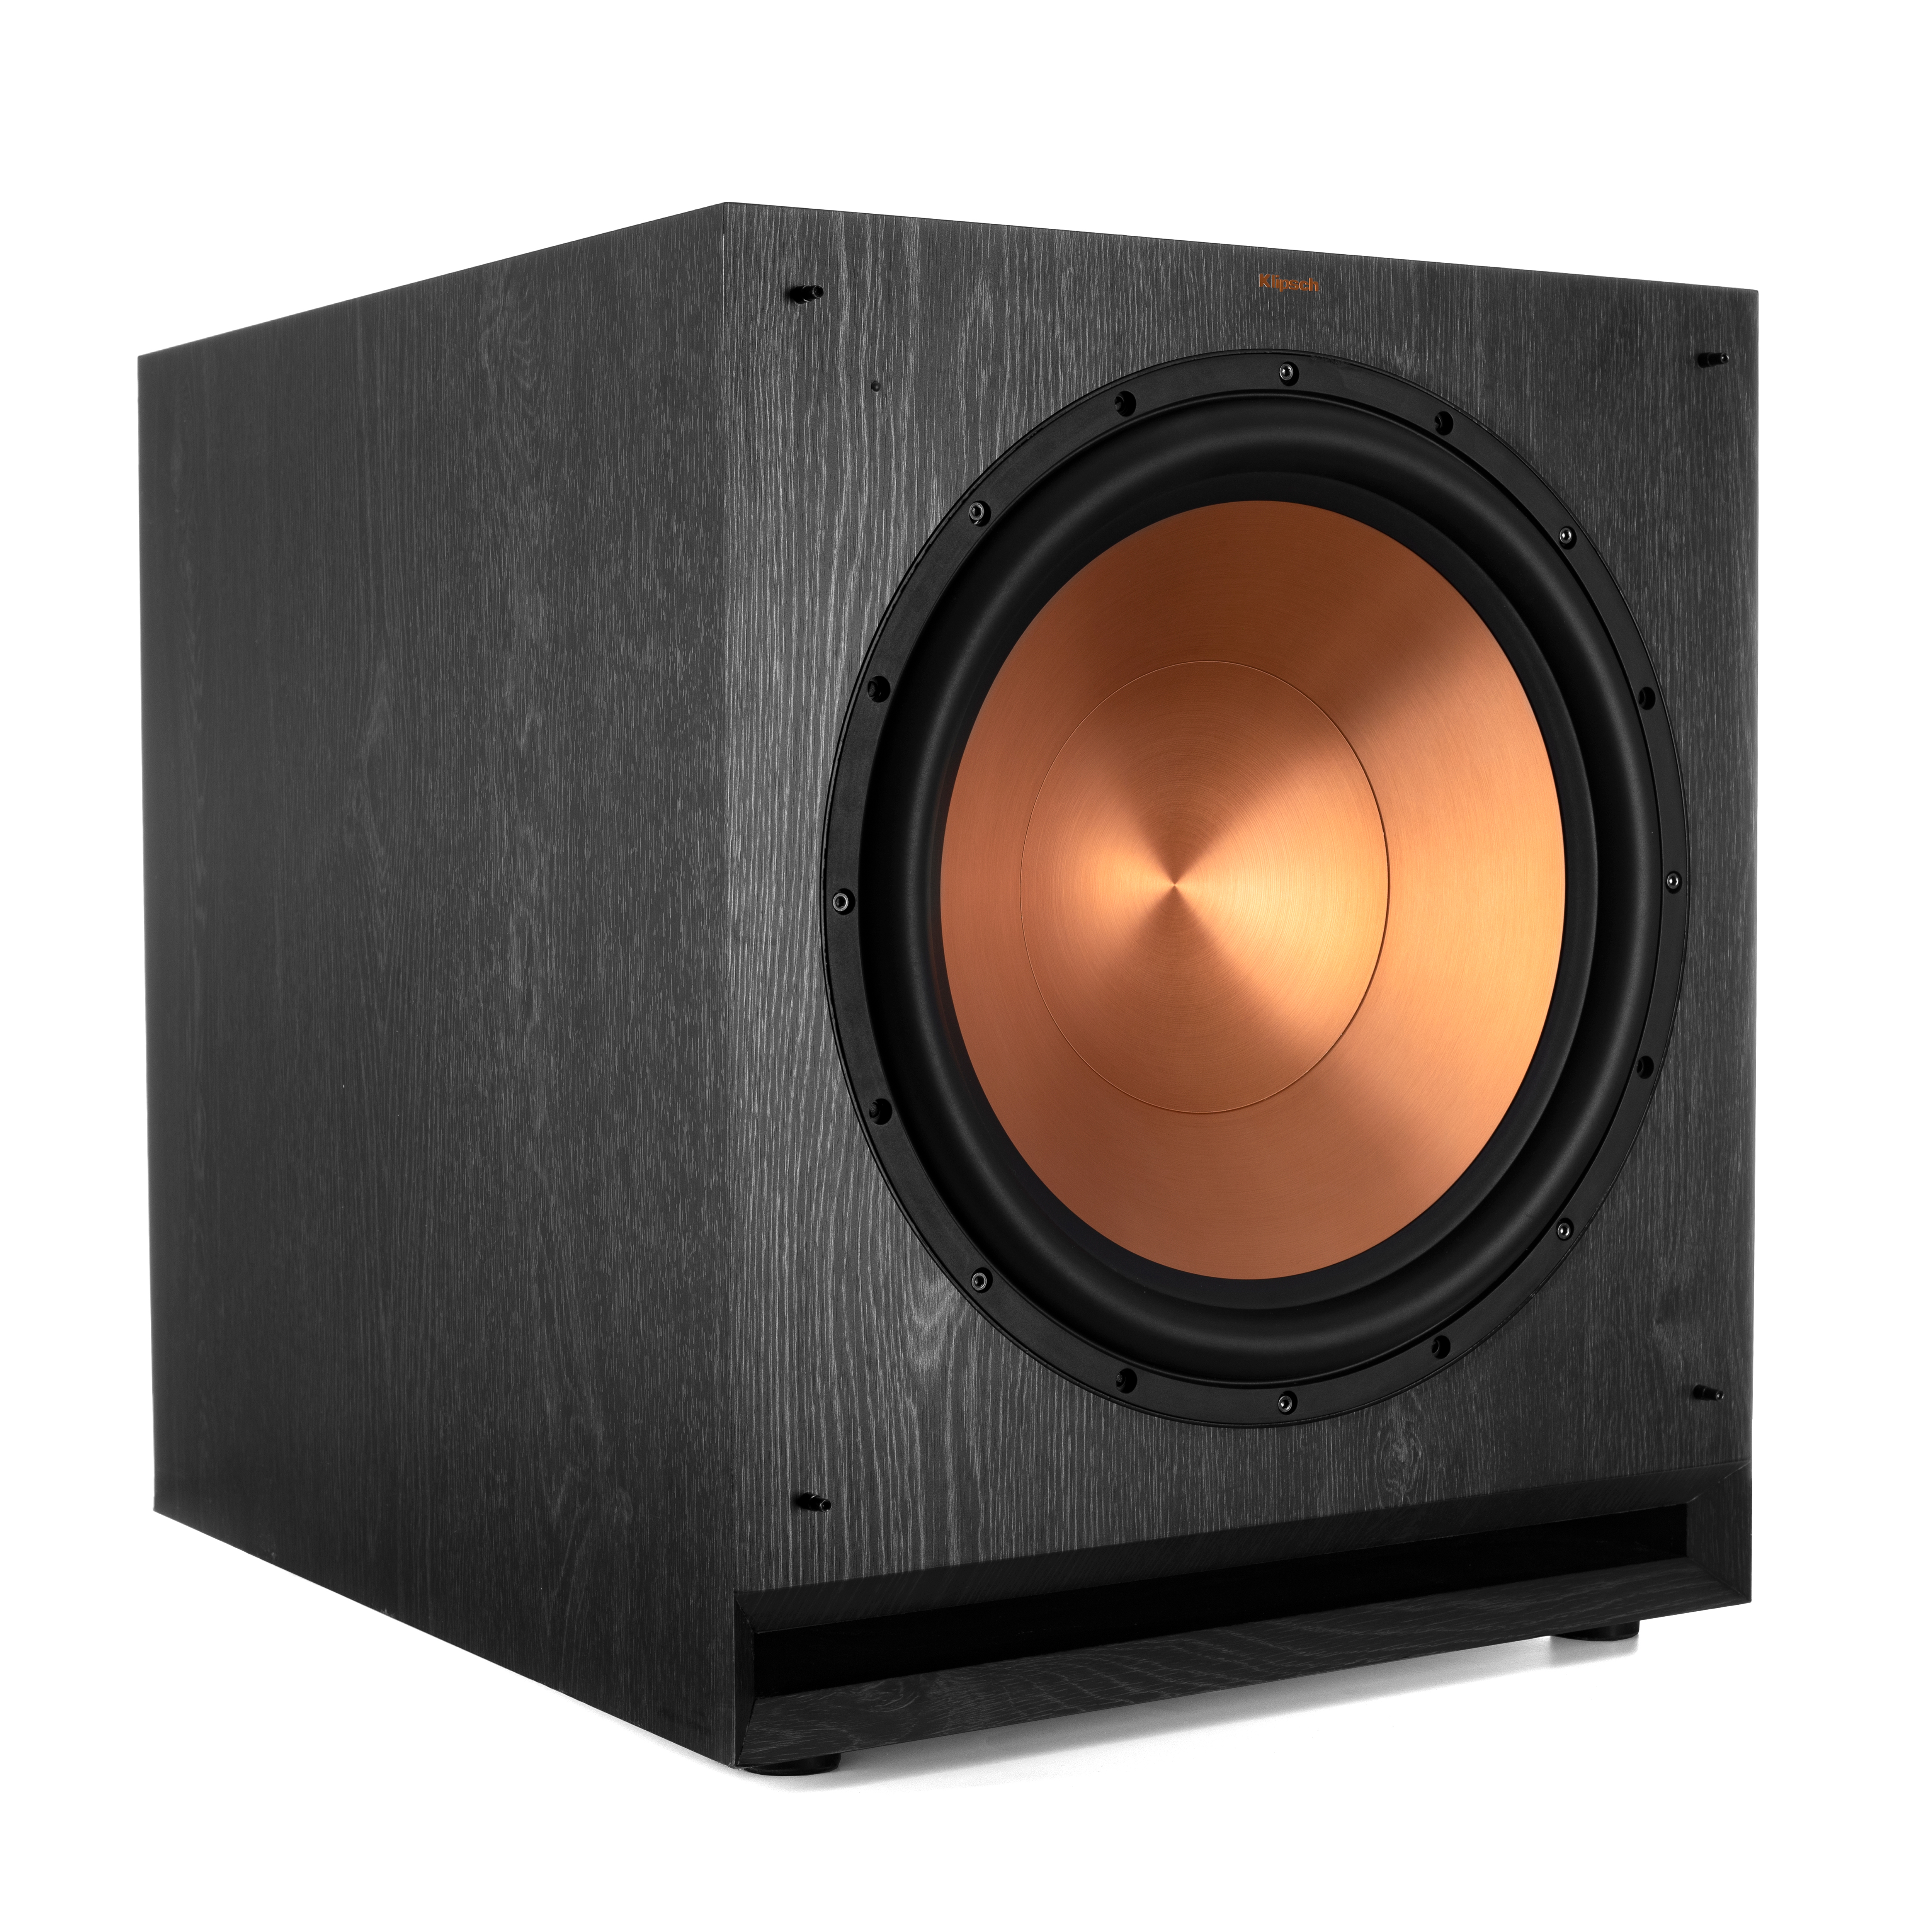 Klipsch SPL-150SW 15-inch Powered Subwoofer - Ebony